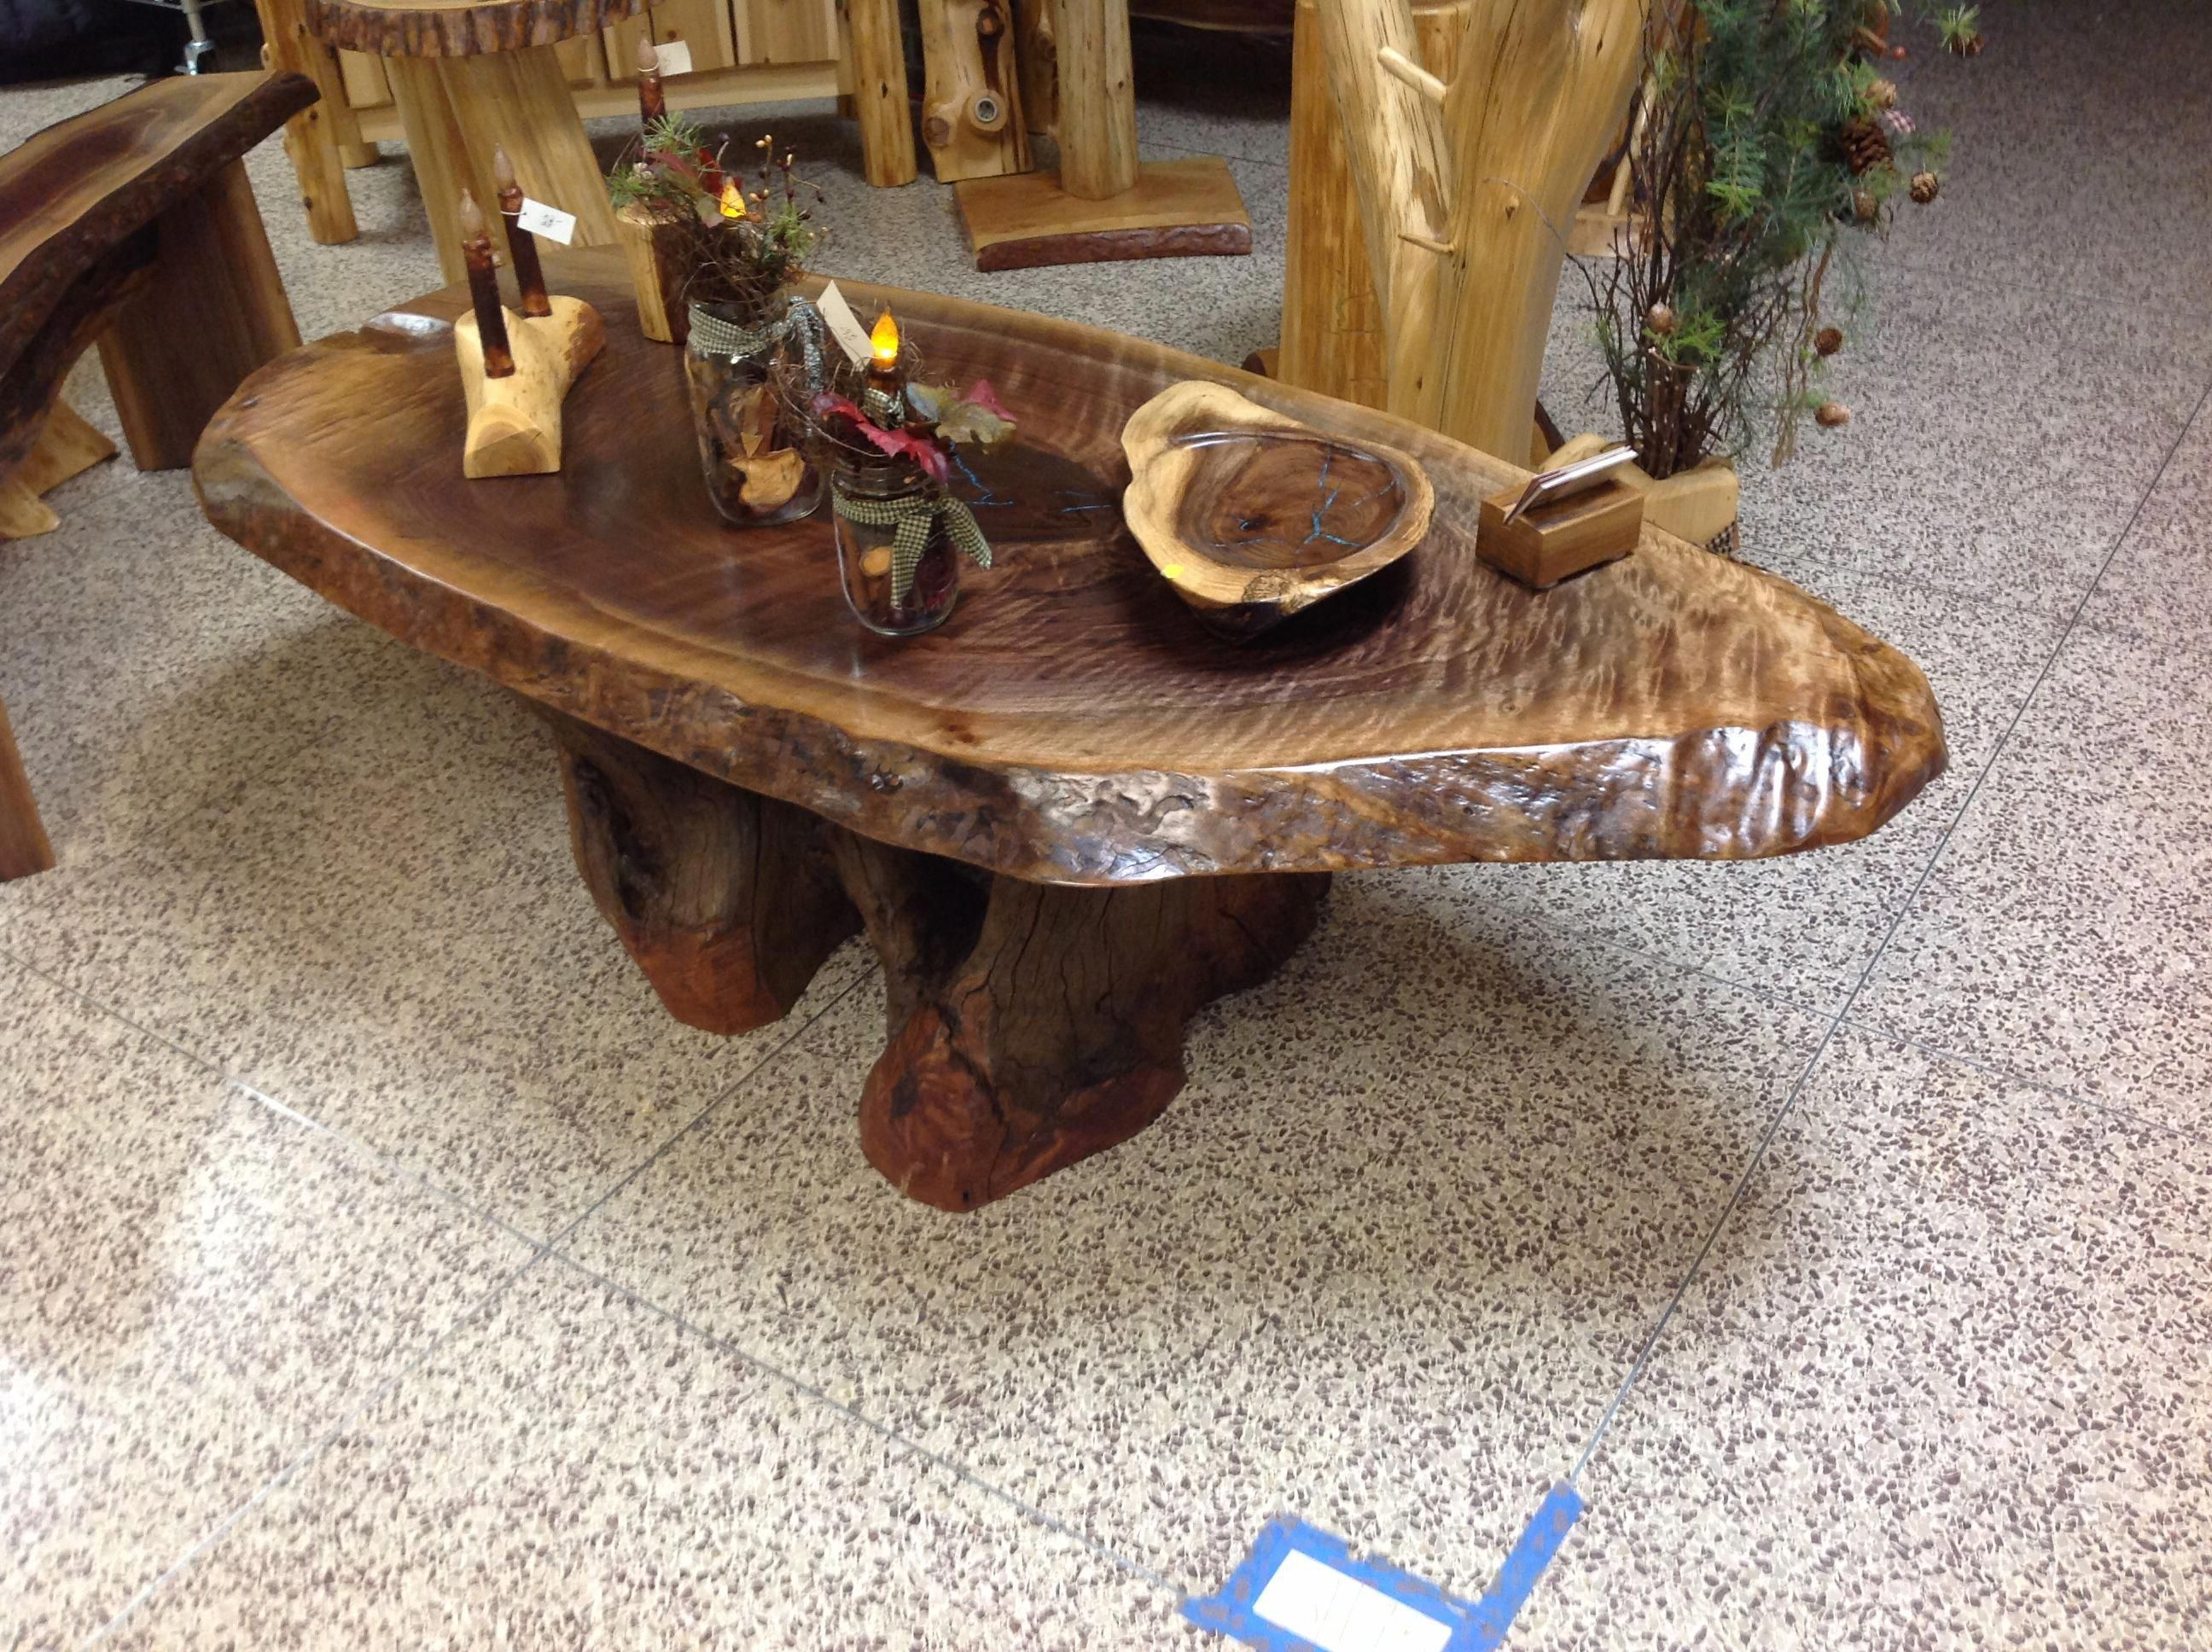 Handcrafted Coffee Tables Liveedgewoodtable Handcrafted Coffee